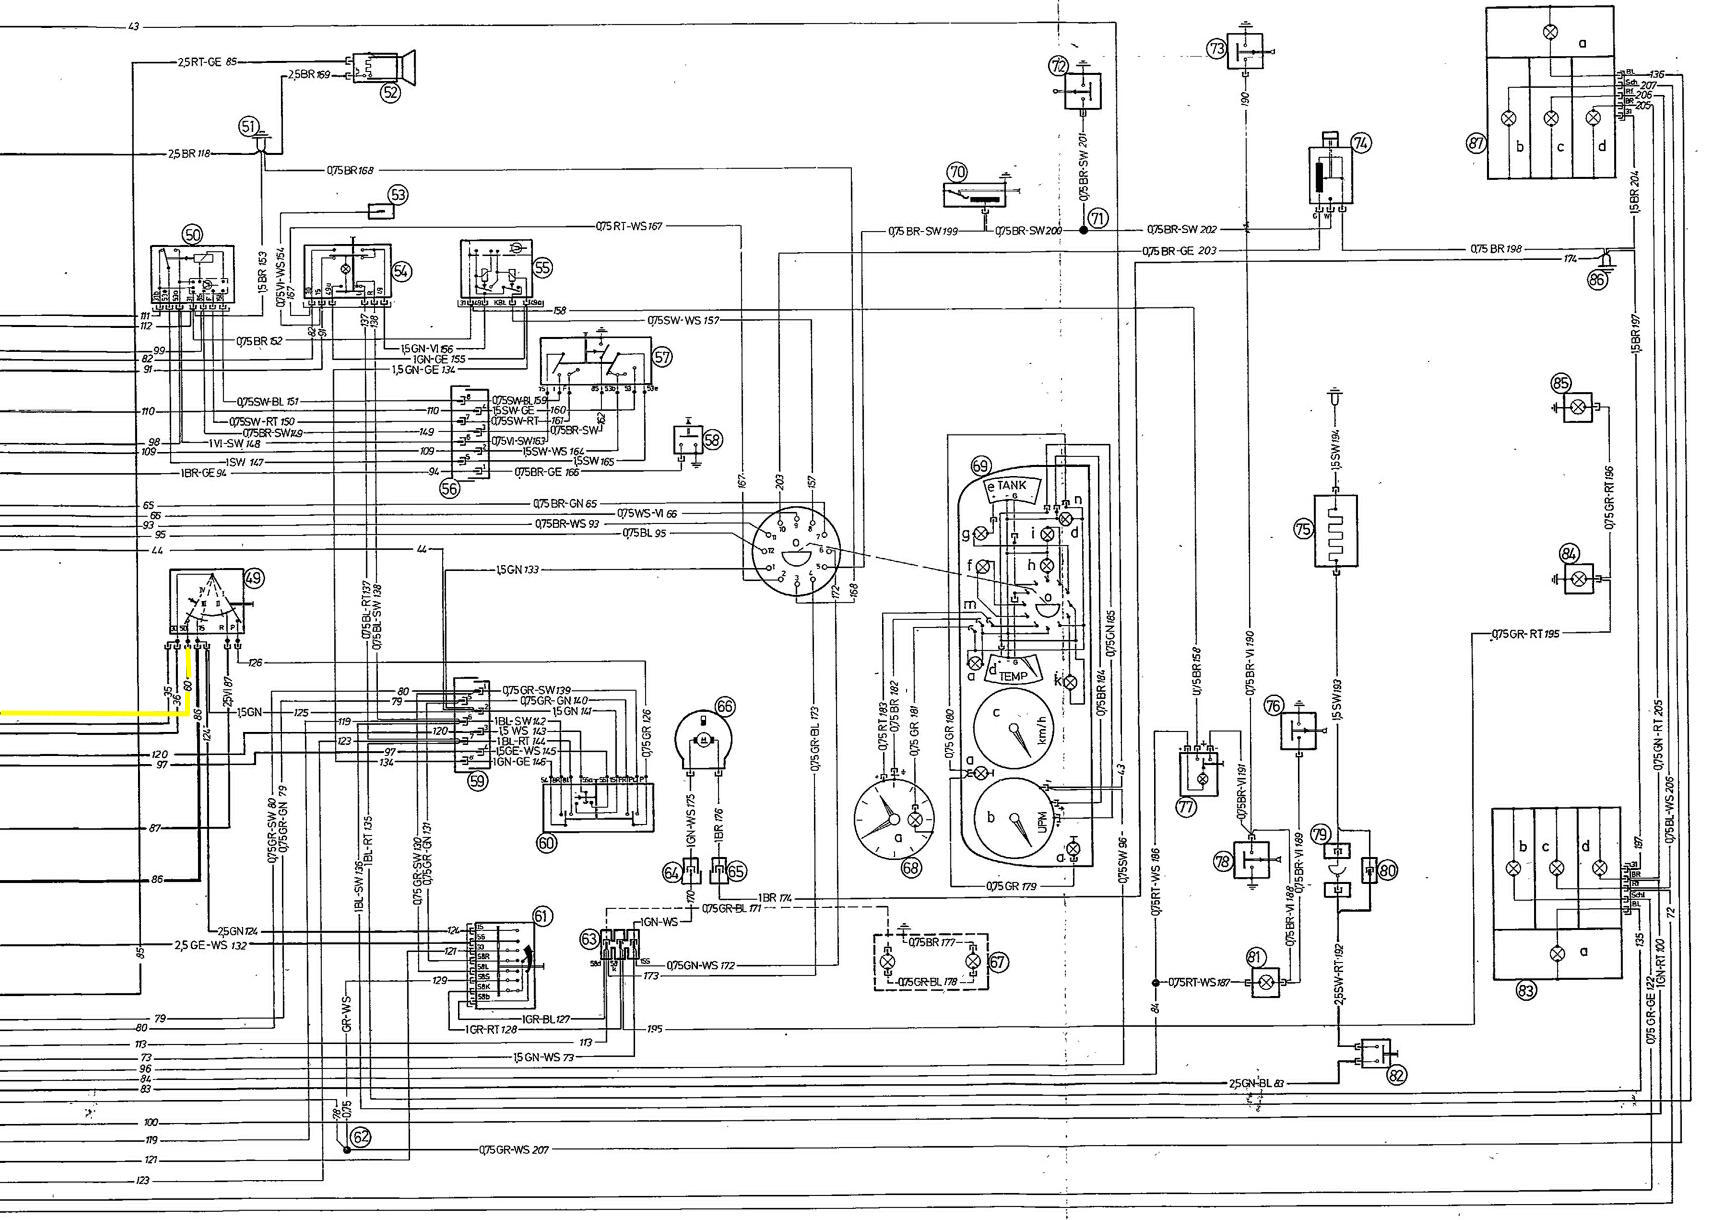 hight resolution of 1972 bmw 2002 wiring diagram wiring diagram sample 71 bmw 2002 ignition wiring diagram